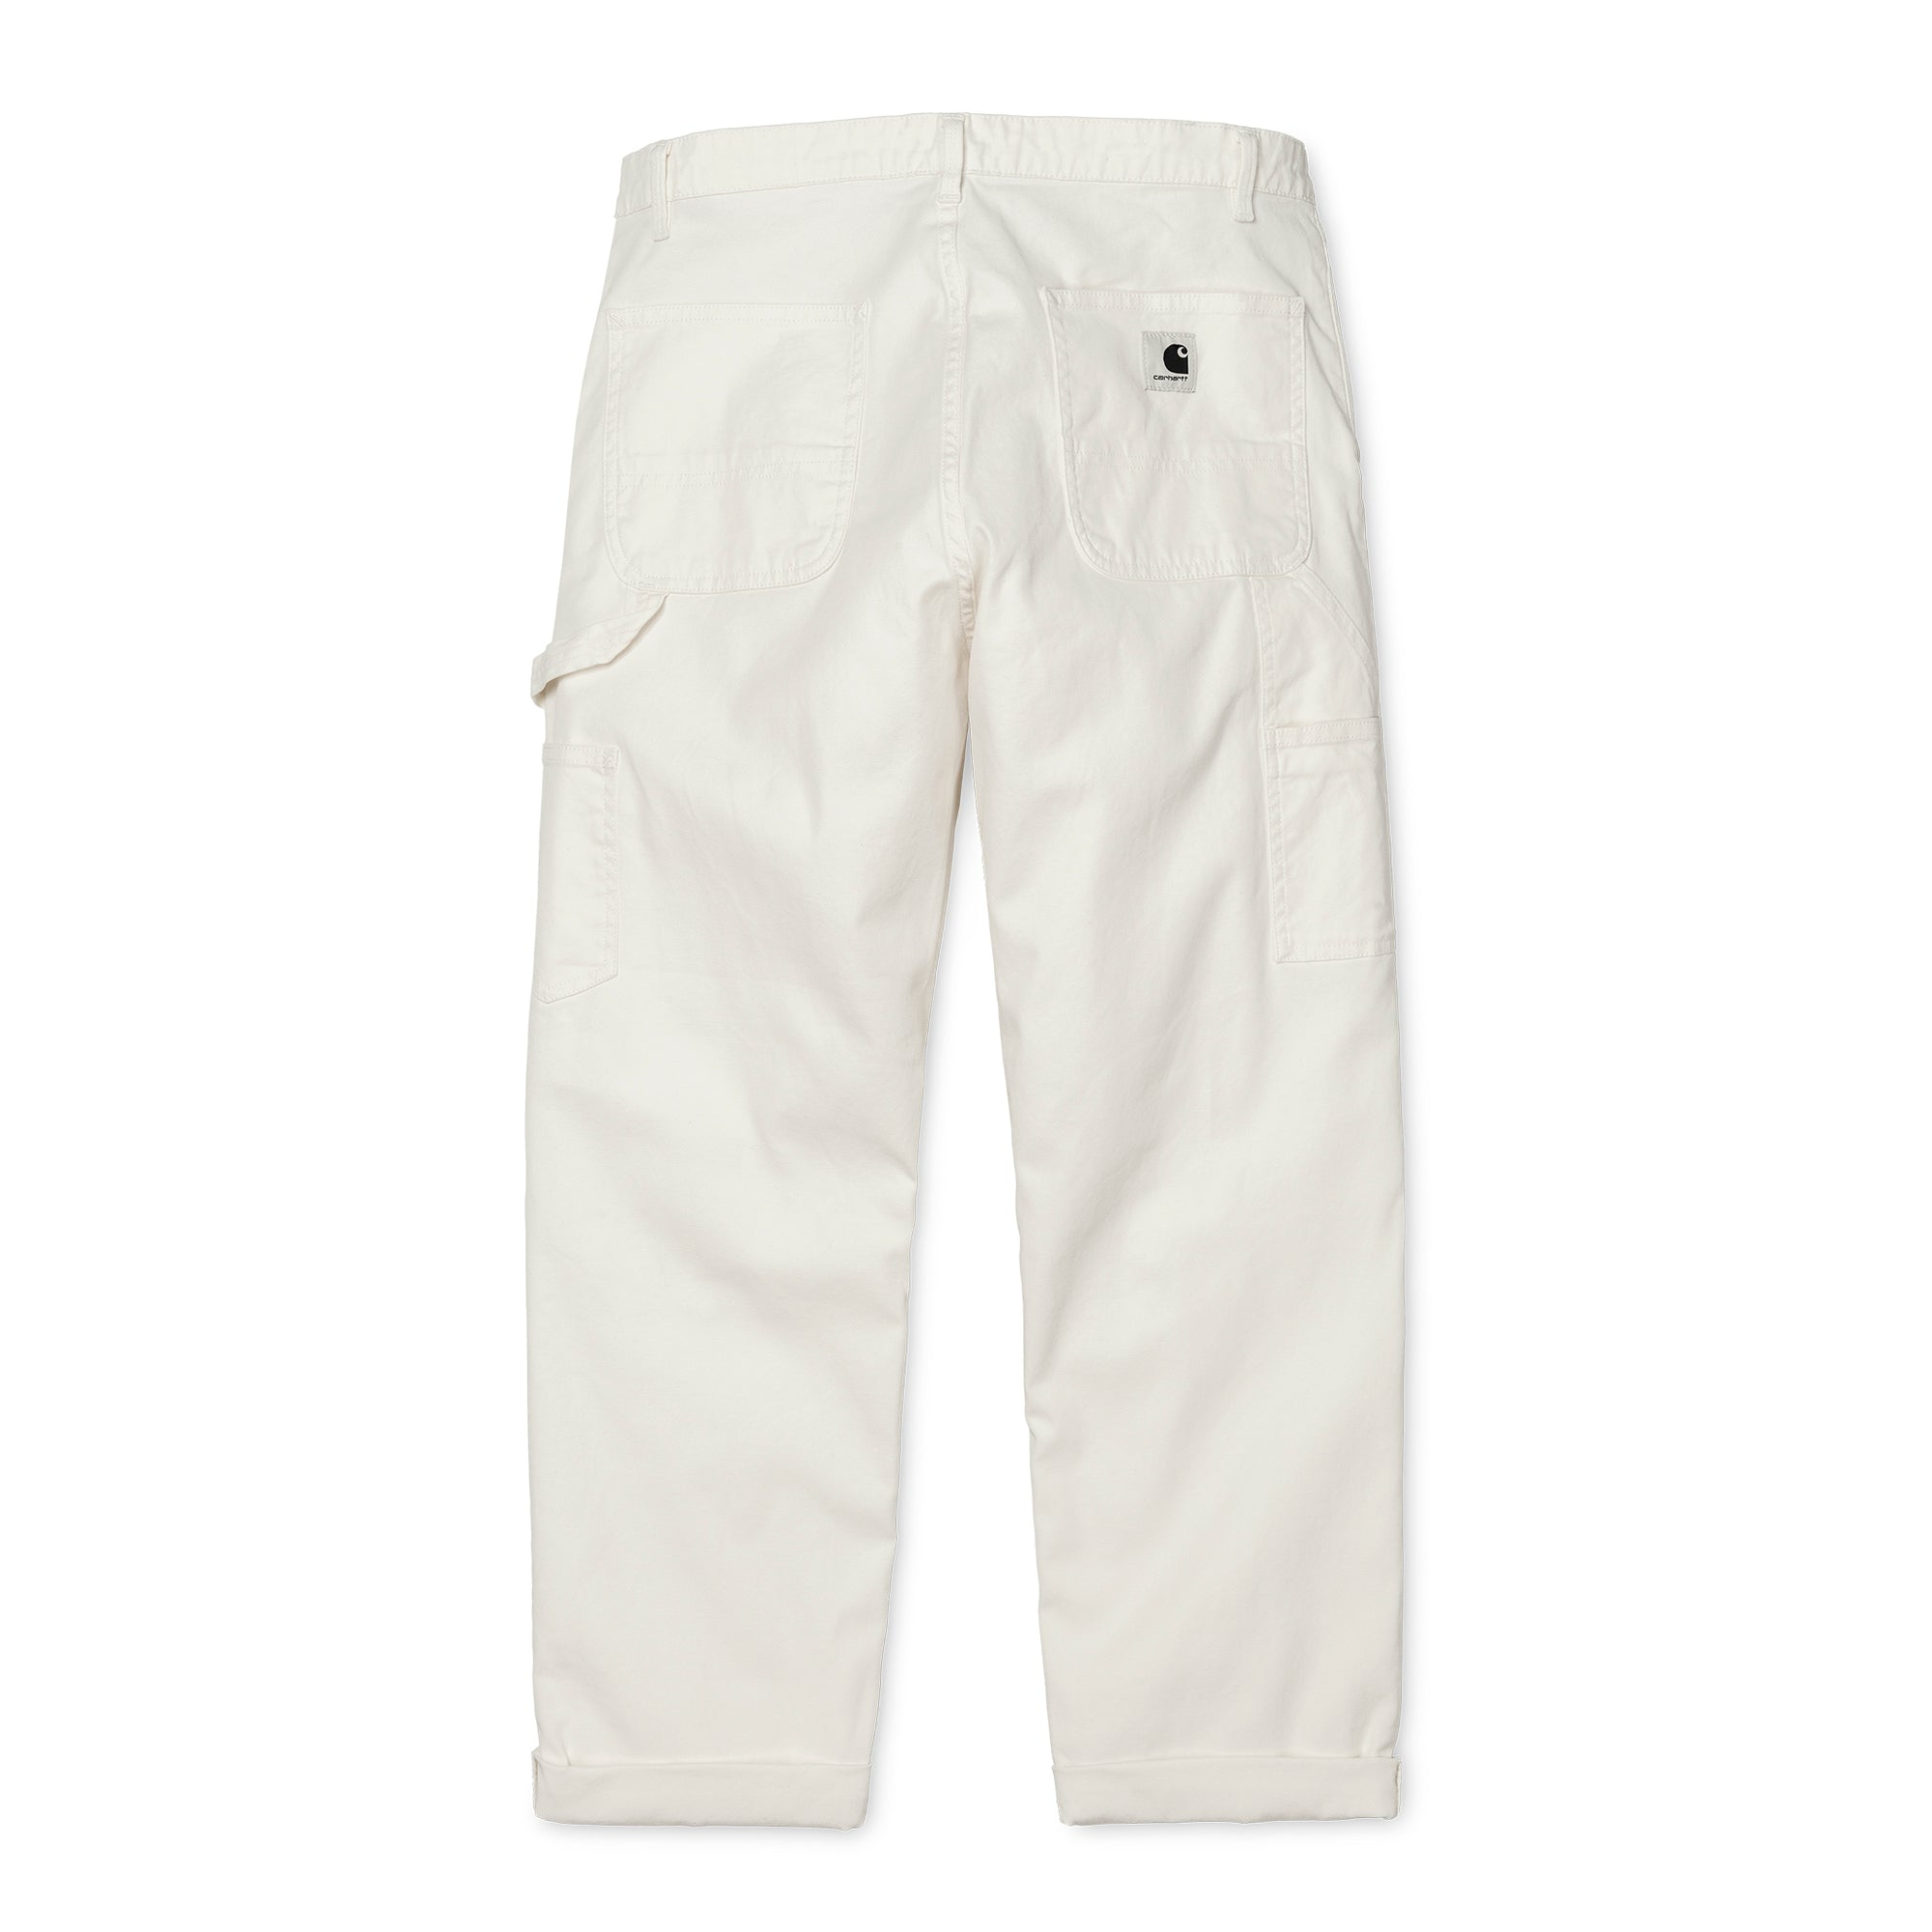 Carhartt WIP Womens Pierce Pant: Wax Rinsed - The Union Project